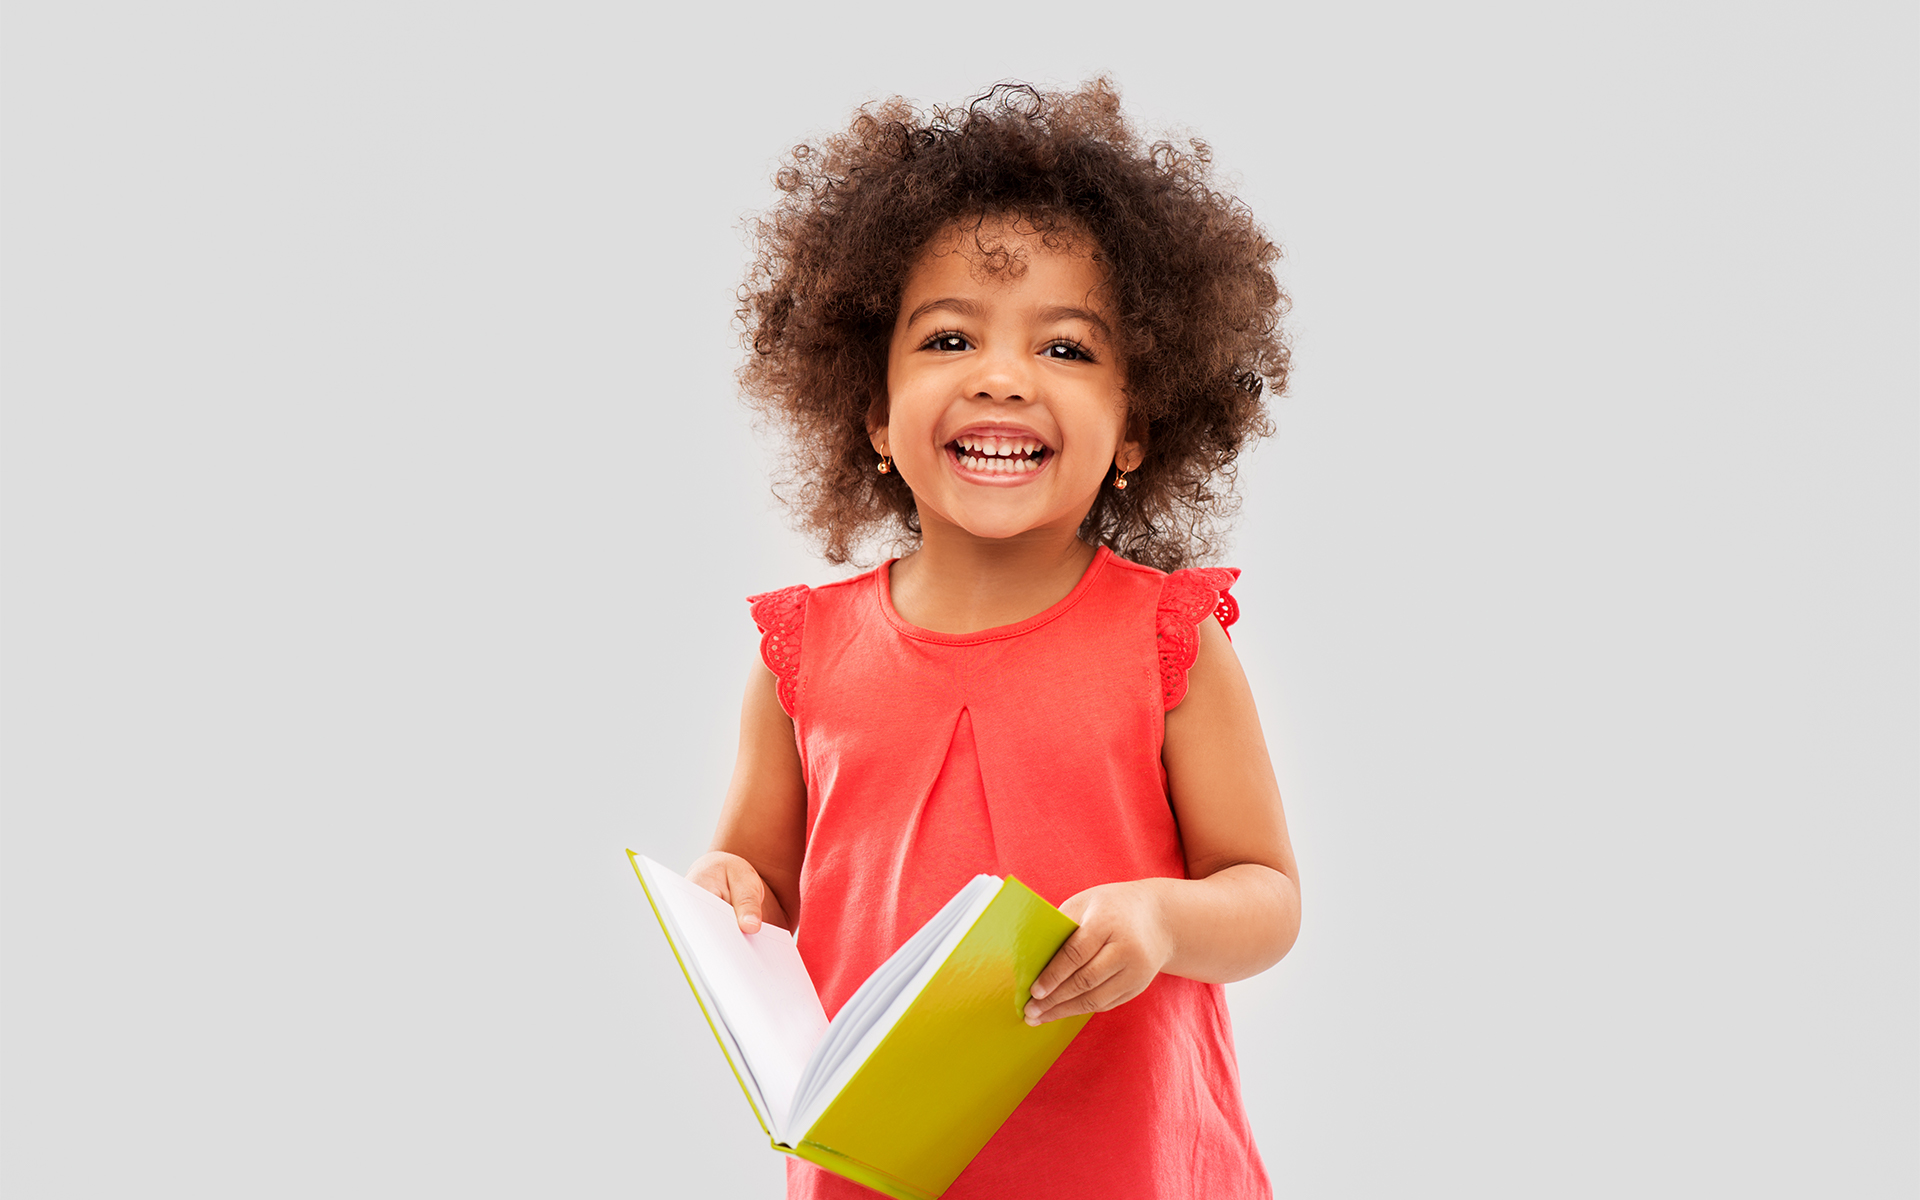 Happy young girl holding open book and smiling